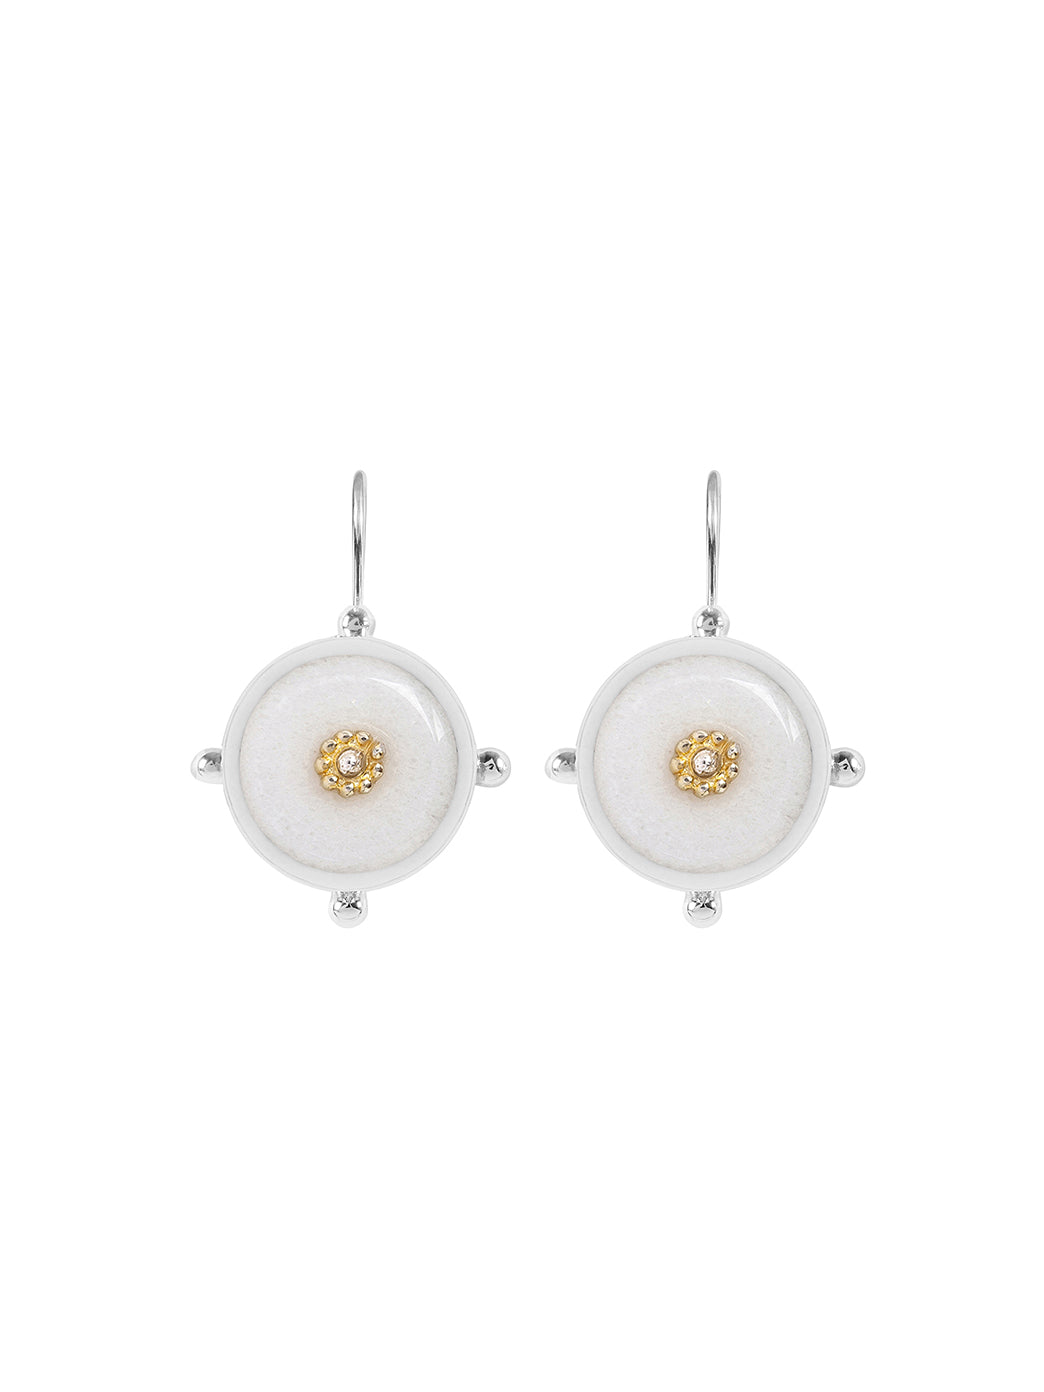 Fiorina Jewellery Button Earrings White Quartzite